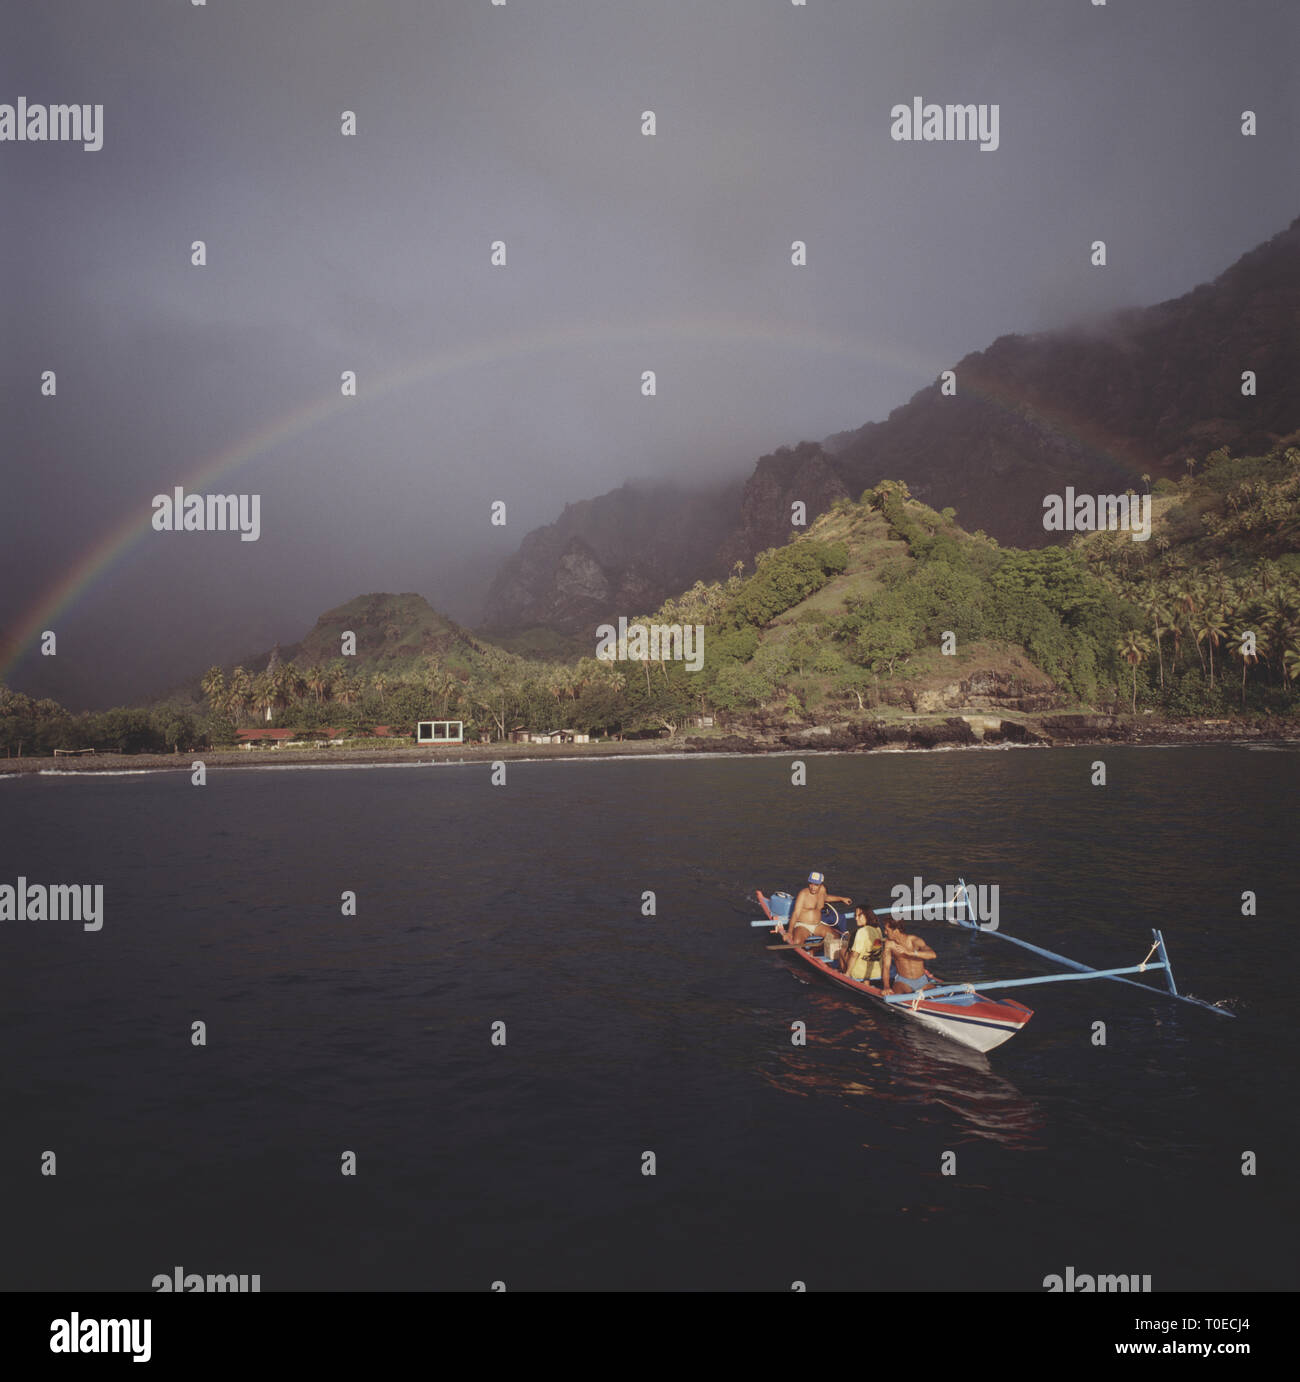 French Polynesia. Marquesas Islands. View of coast with outrigger canoe. - Stock Image